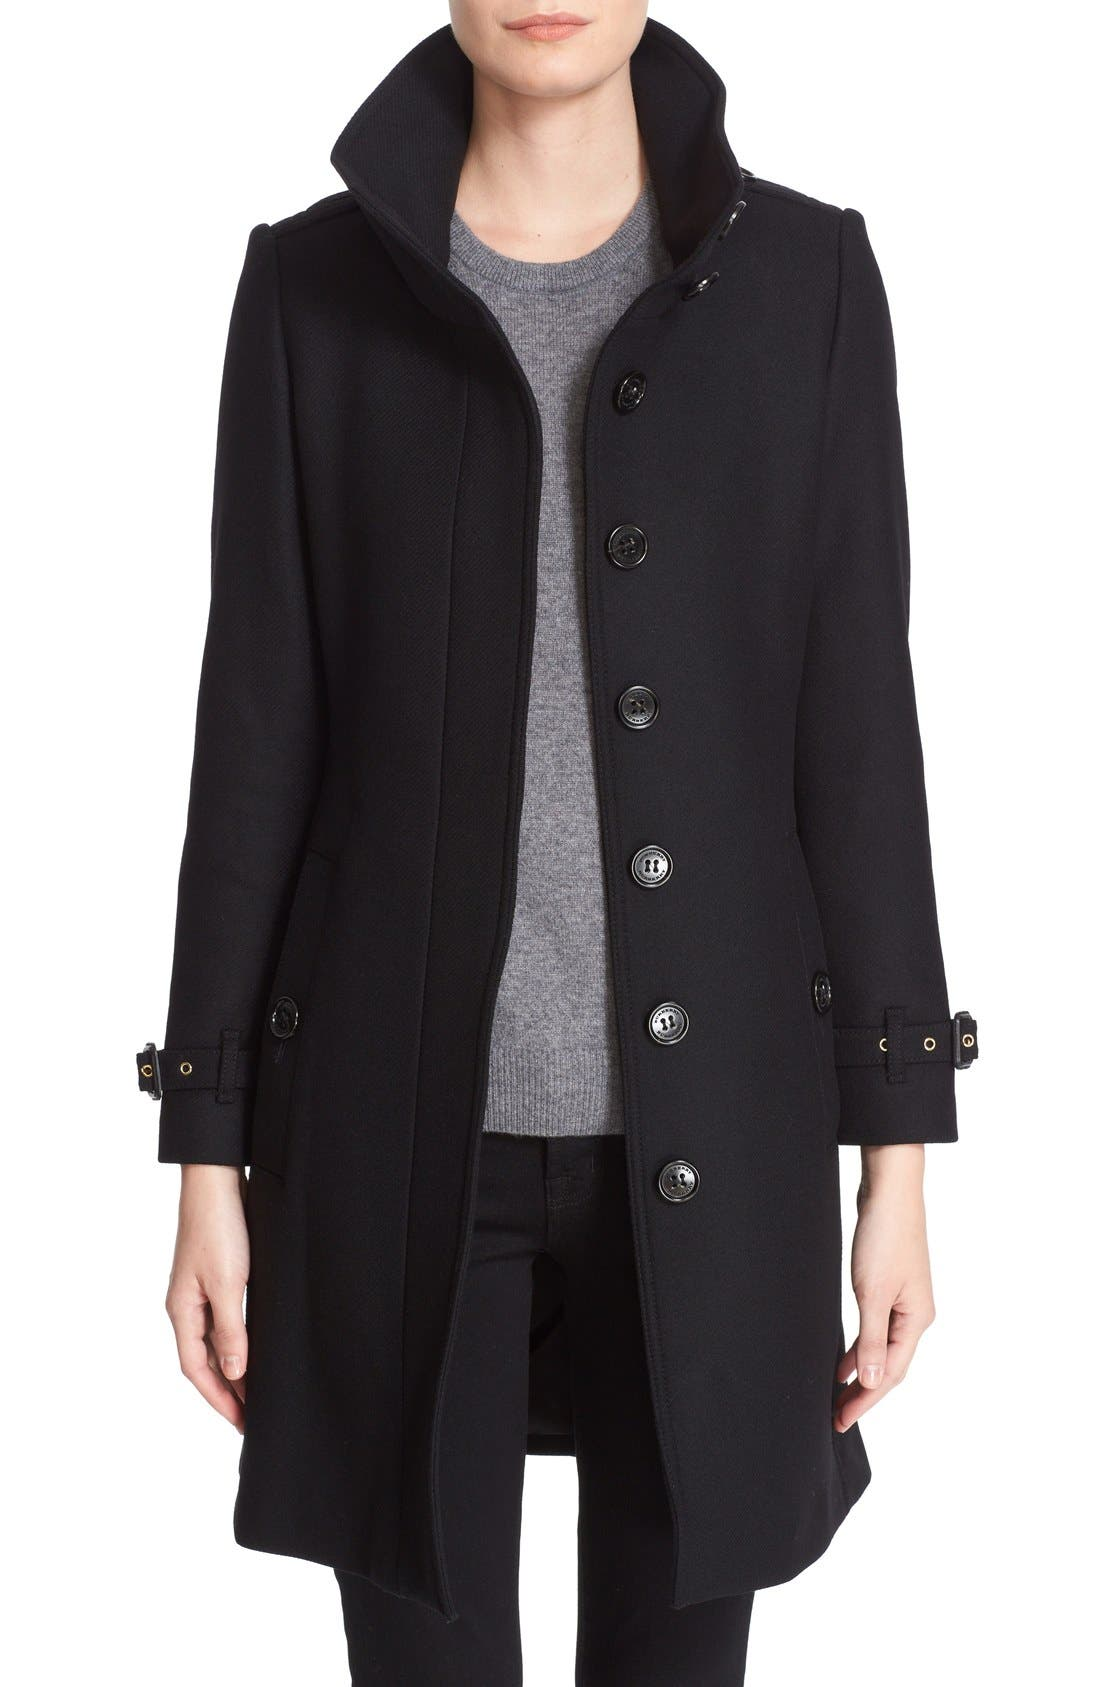 Burberry Gibbsmoore Funnel Collar Trench Coat | Nordstrom